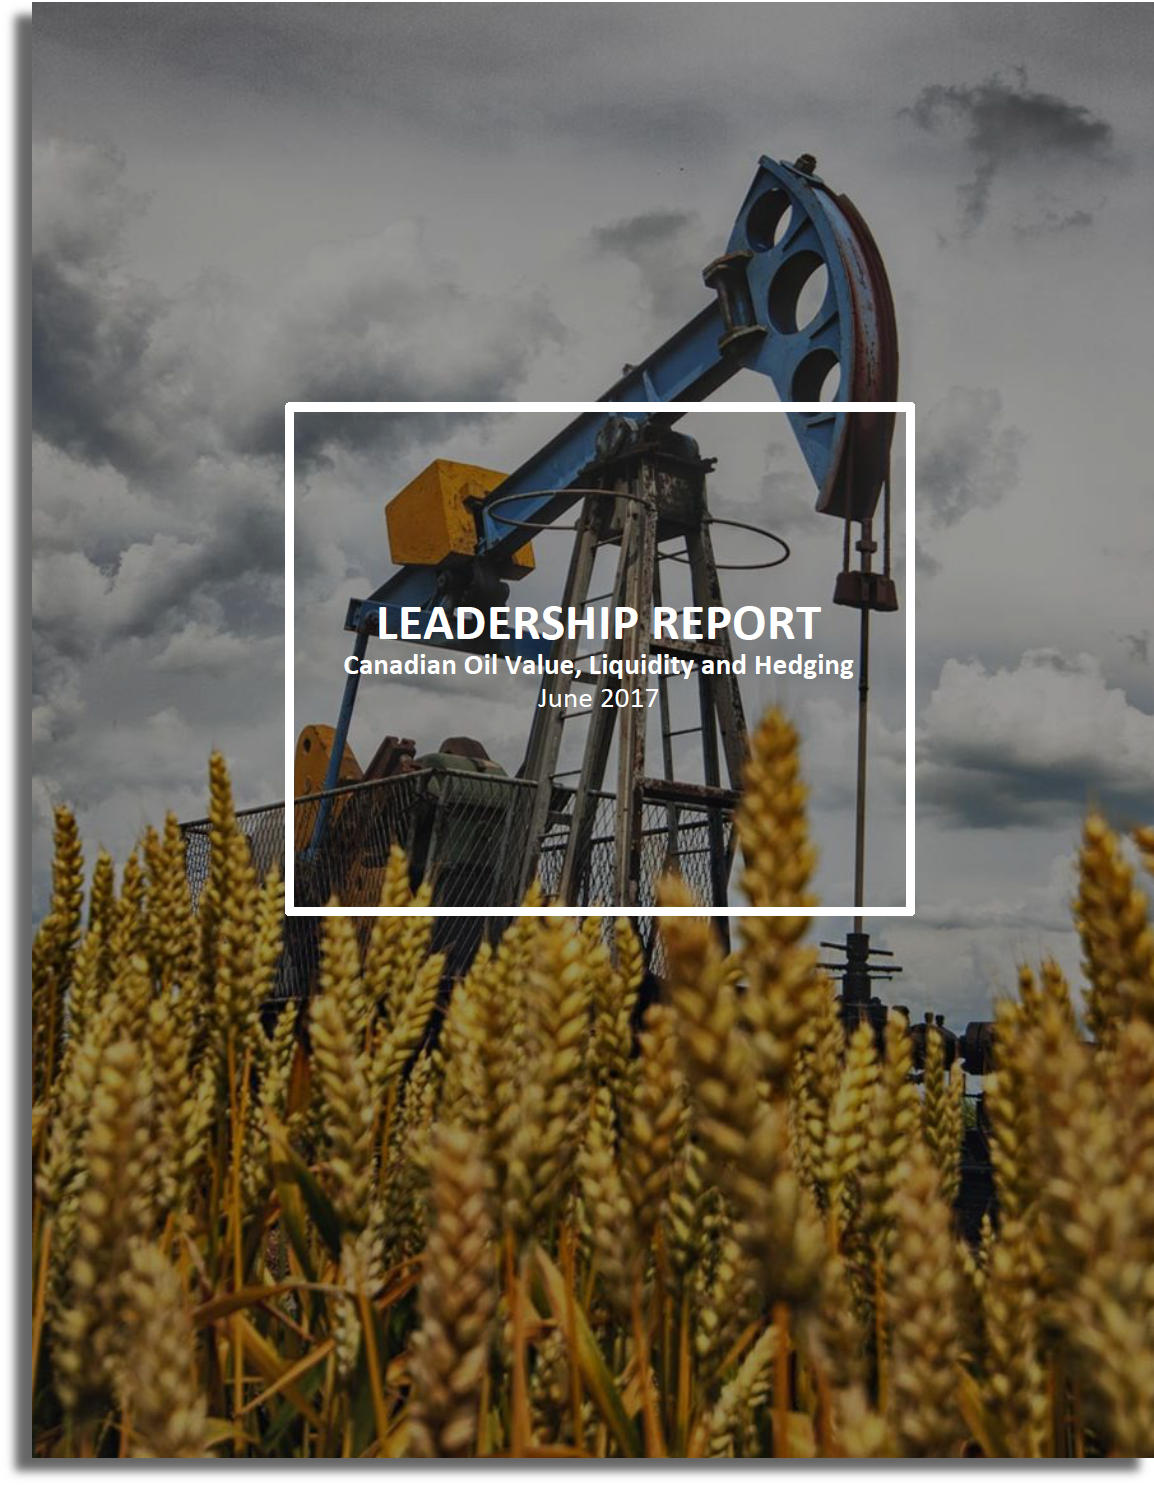 Leadership Report: Canadian Oil Value, Liquidity and Hedging